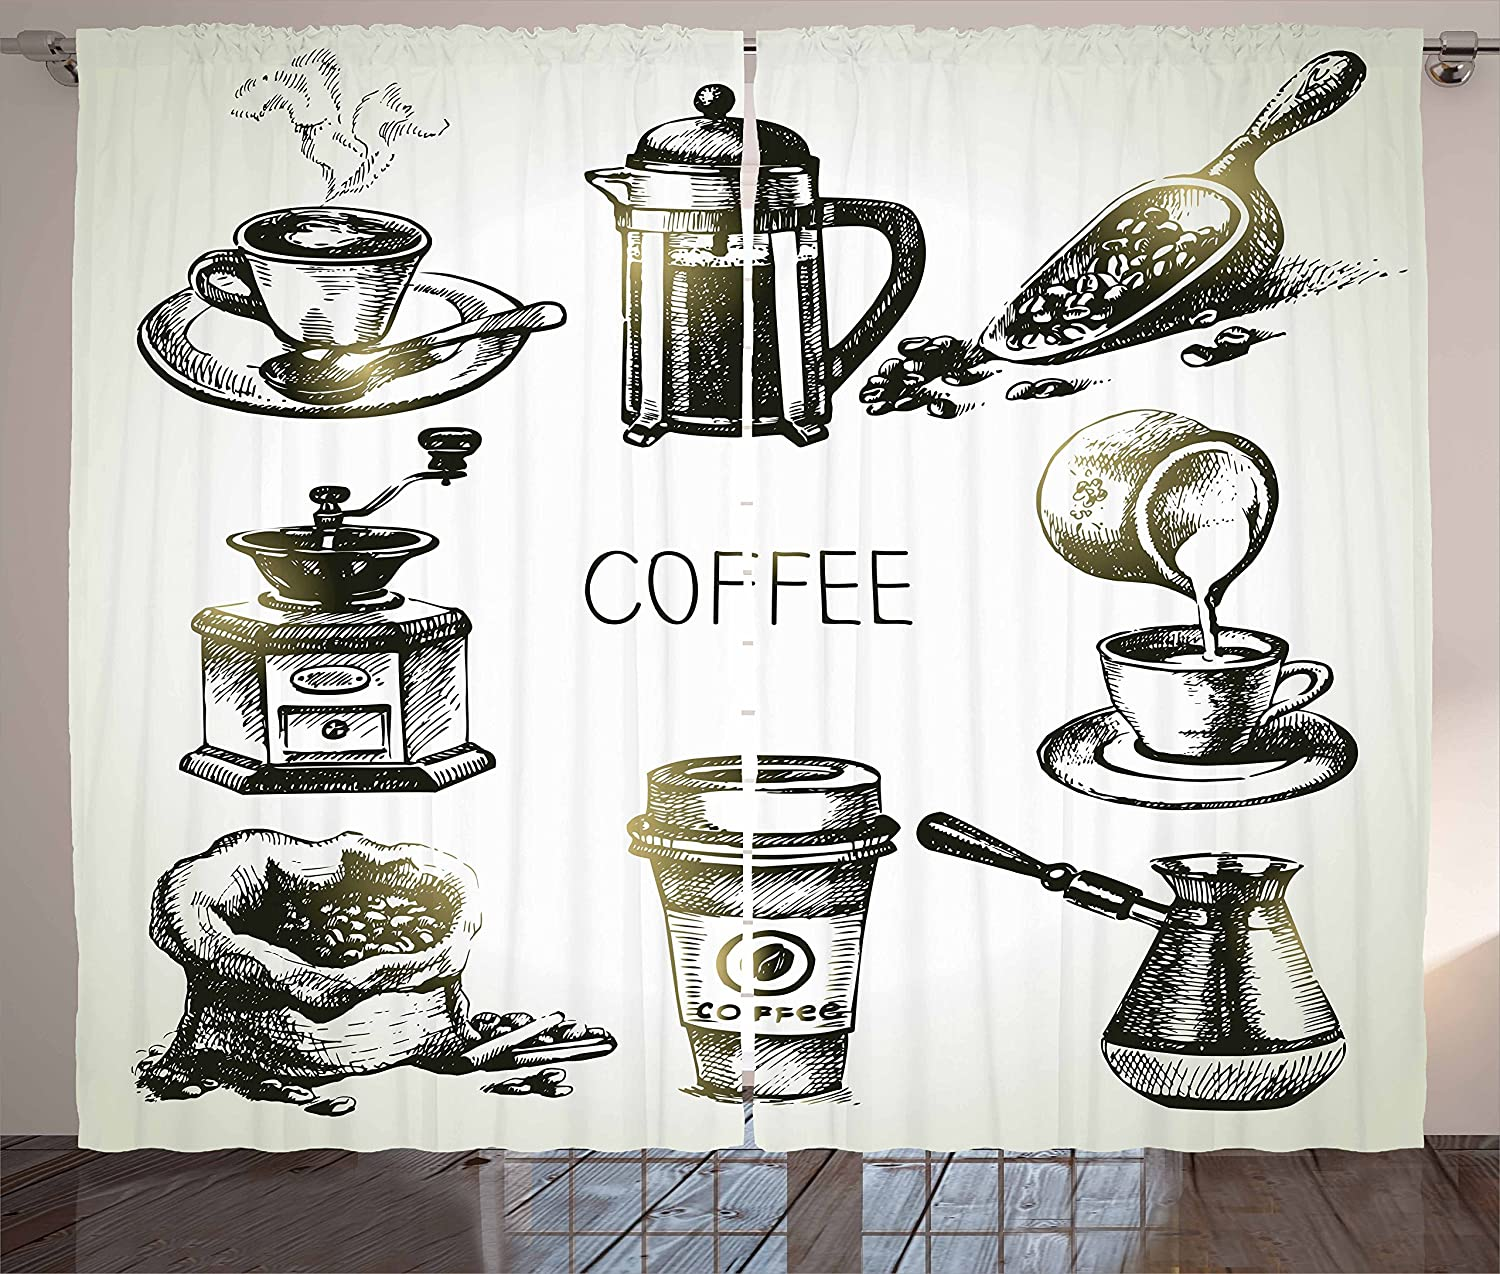 Ambesonne Coffee Curtains, Brewing Equipment Doodle Sketch Grinder French Press Plastic Cup Scoop Vintage, Living Room Bedroom Window Drapes 2 Panel Set, 108 W X 63 L Inches, Black Yellow